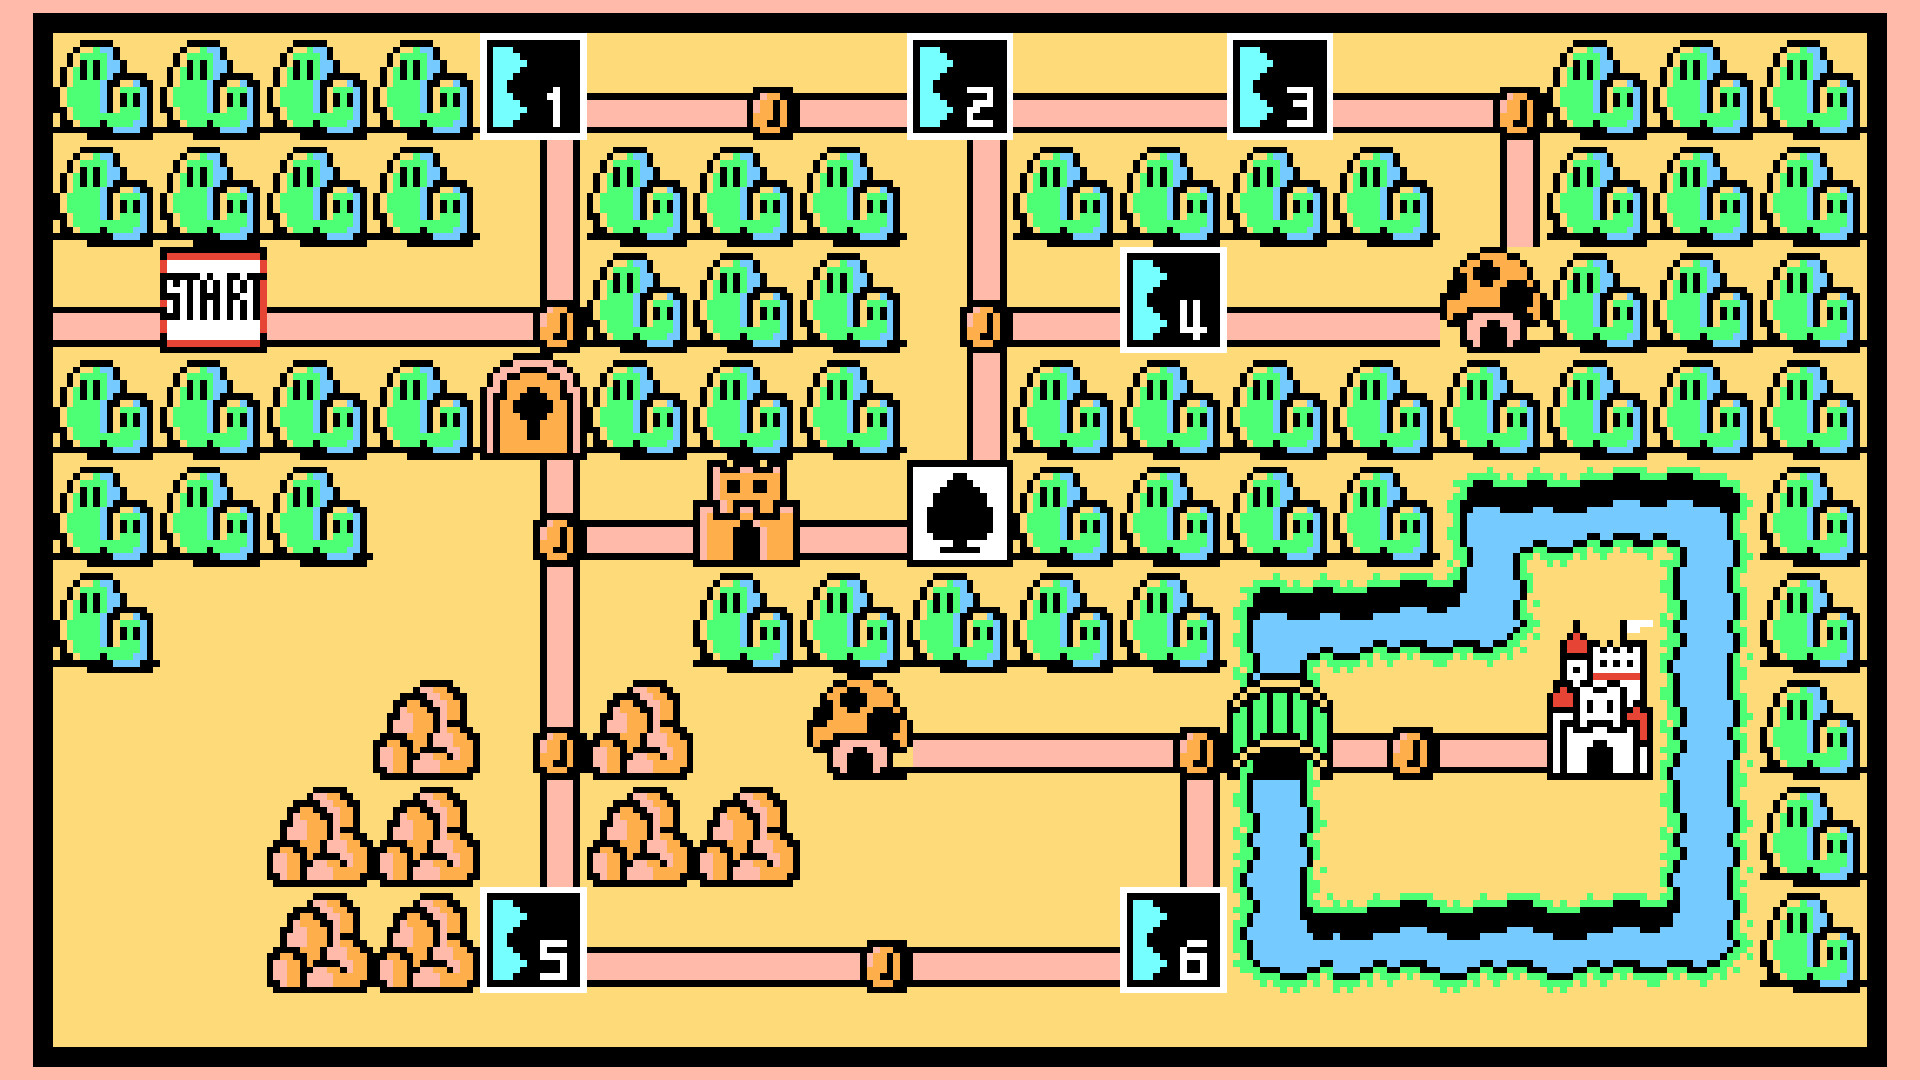 1920x1080 Video Game - Super Mario Bros. 3 Wallpaper